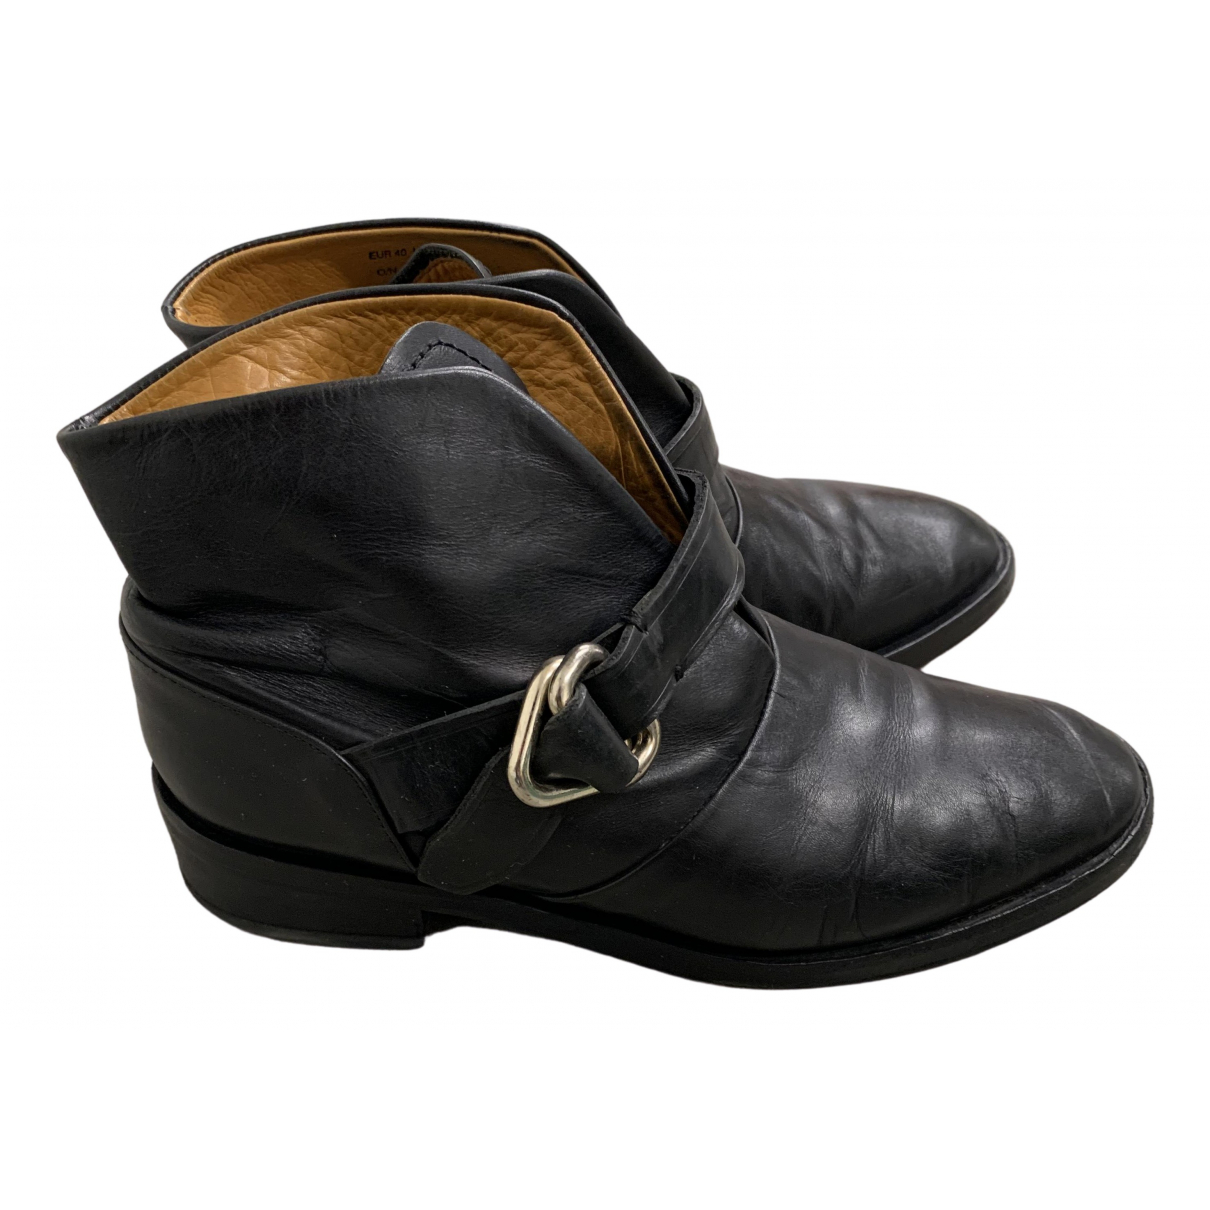 & Stories \N Black Leather Ankle boots for Women 40 EU